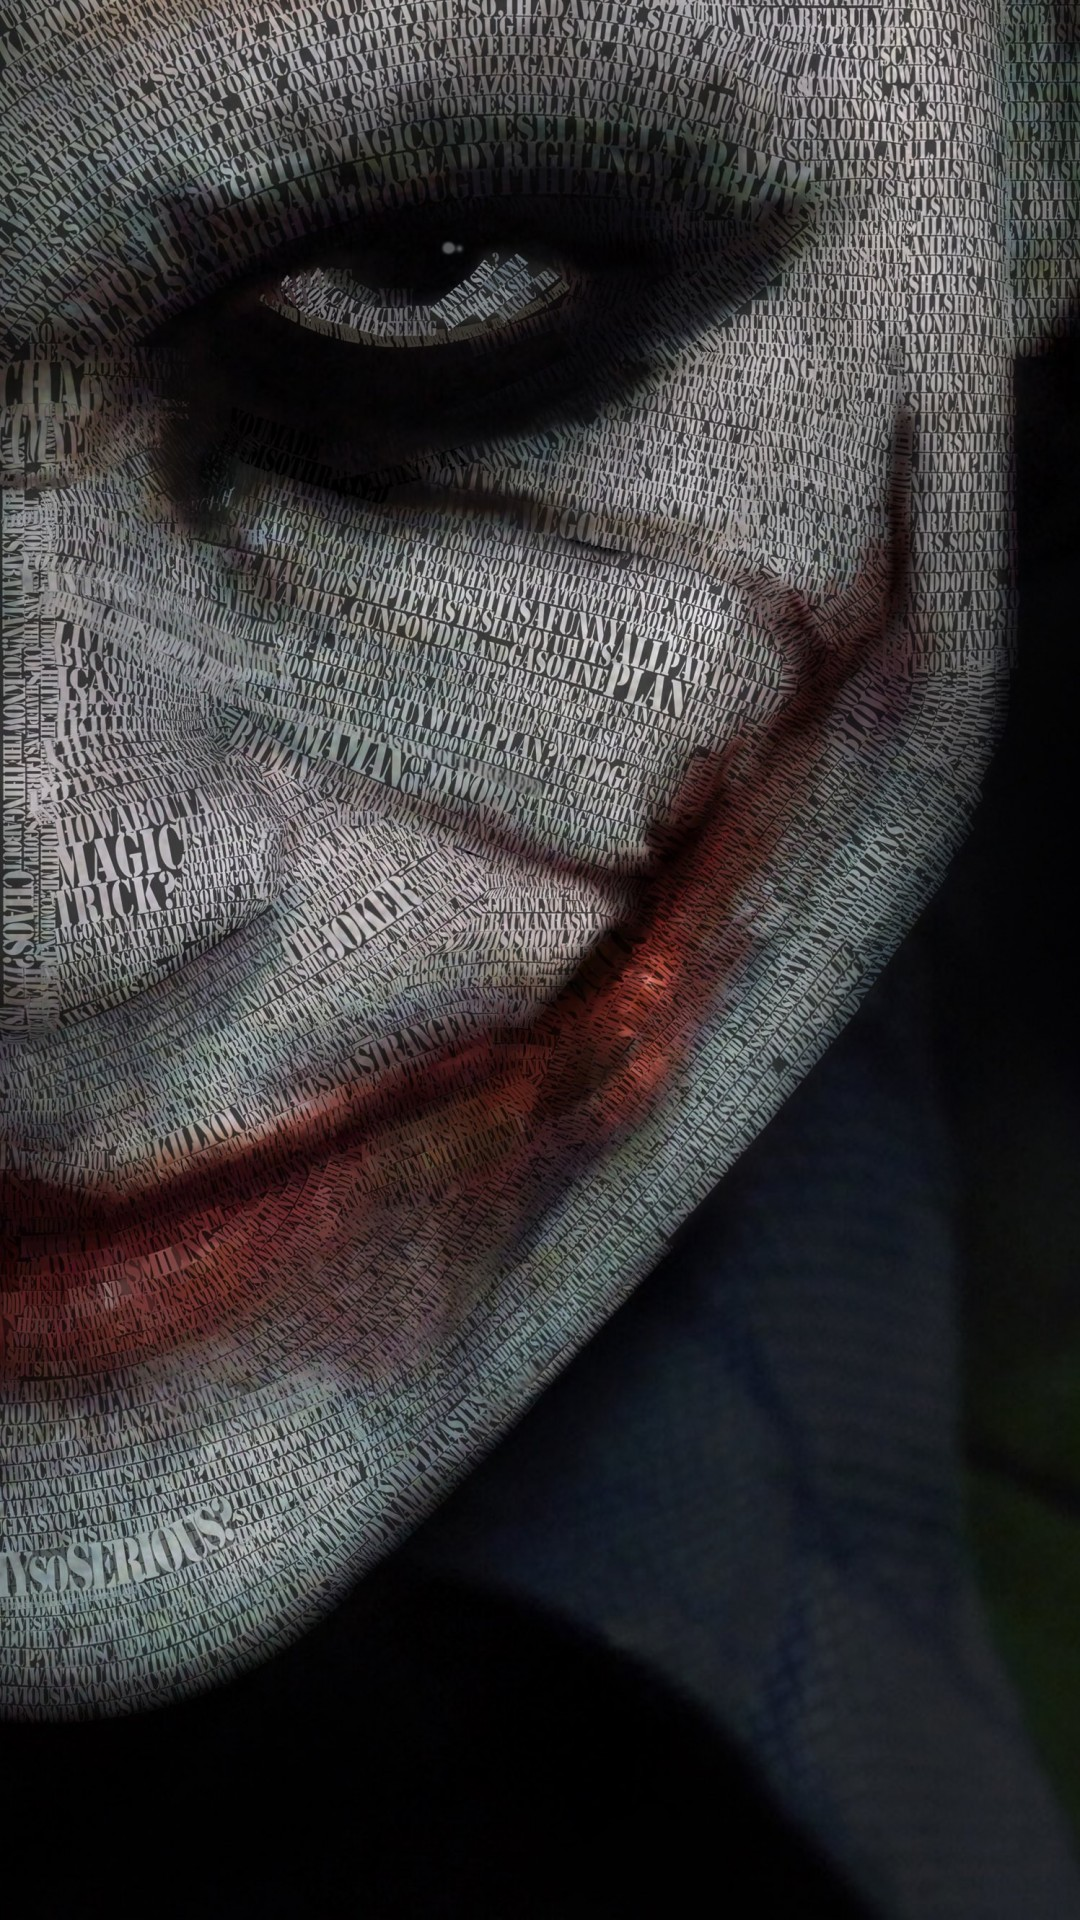 The Joker Typeface Portrait Wallpaper for HTC One